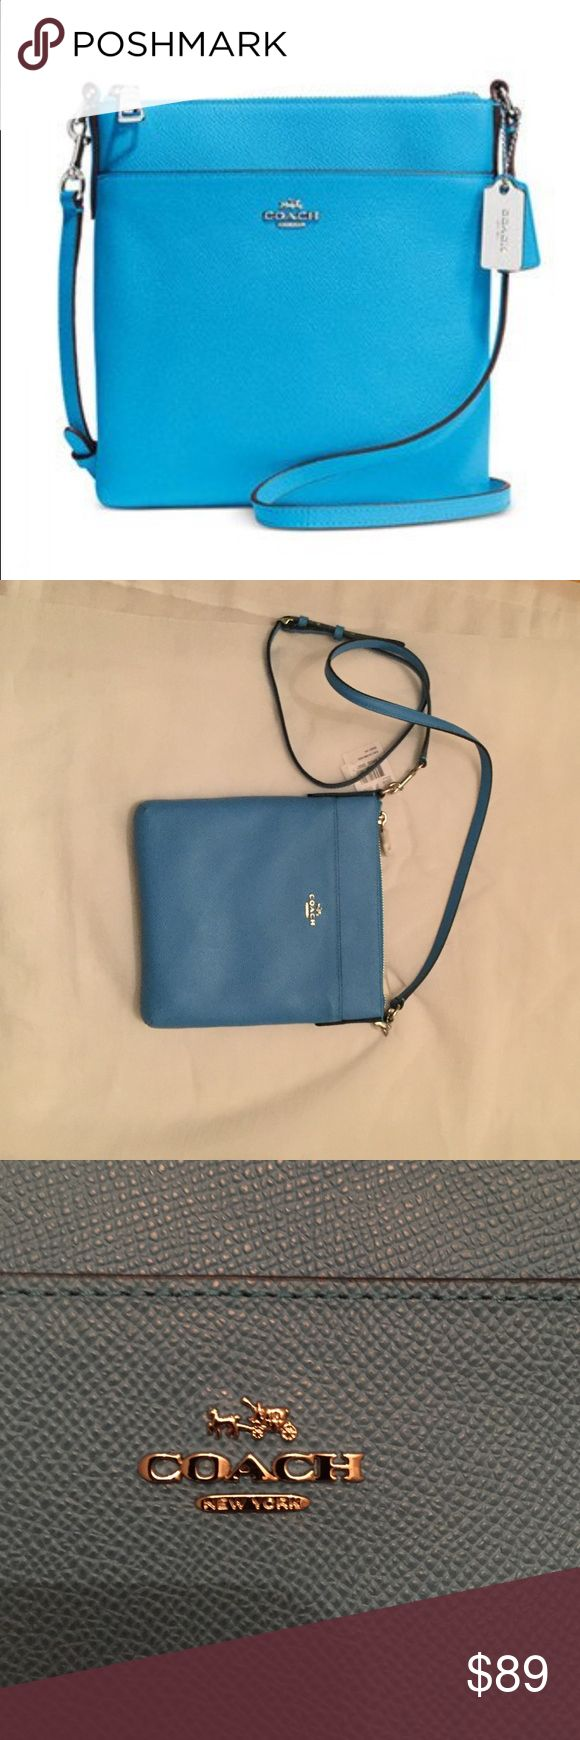 Authentic Azure Courier purse Set the tone in 2017!  Updated in embossed leather with a delicate yet durable texture, the slender North/South Swingpack keeps valuables securely stowed for weekends and travel. It comes with an adjustable, edge-painted strap for a comfortable, hands-free carry. Coach Bags Crossbody Bags